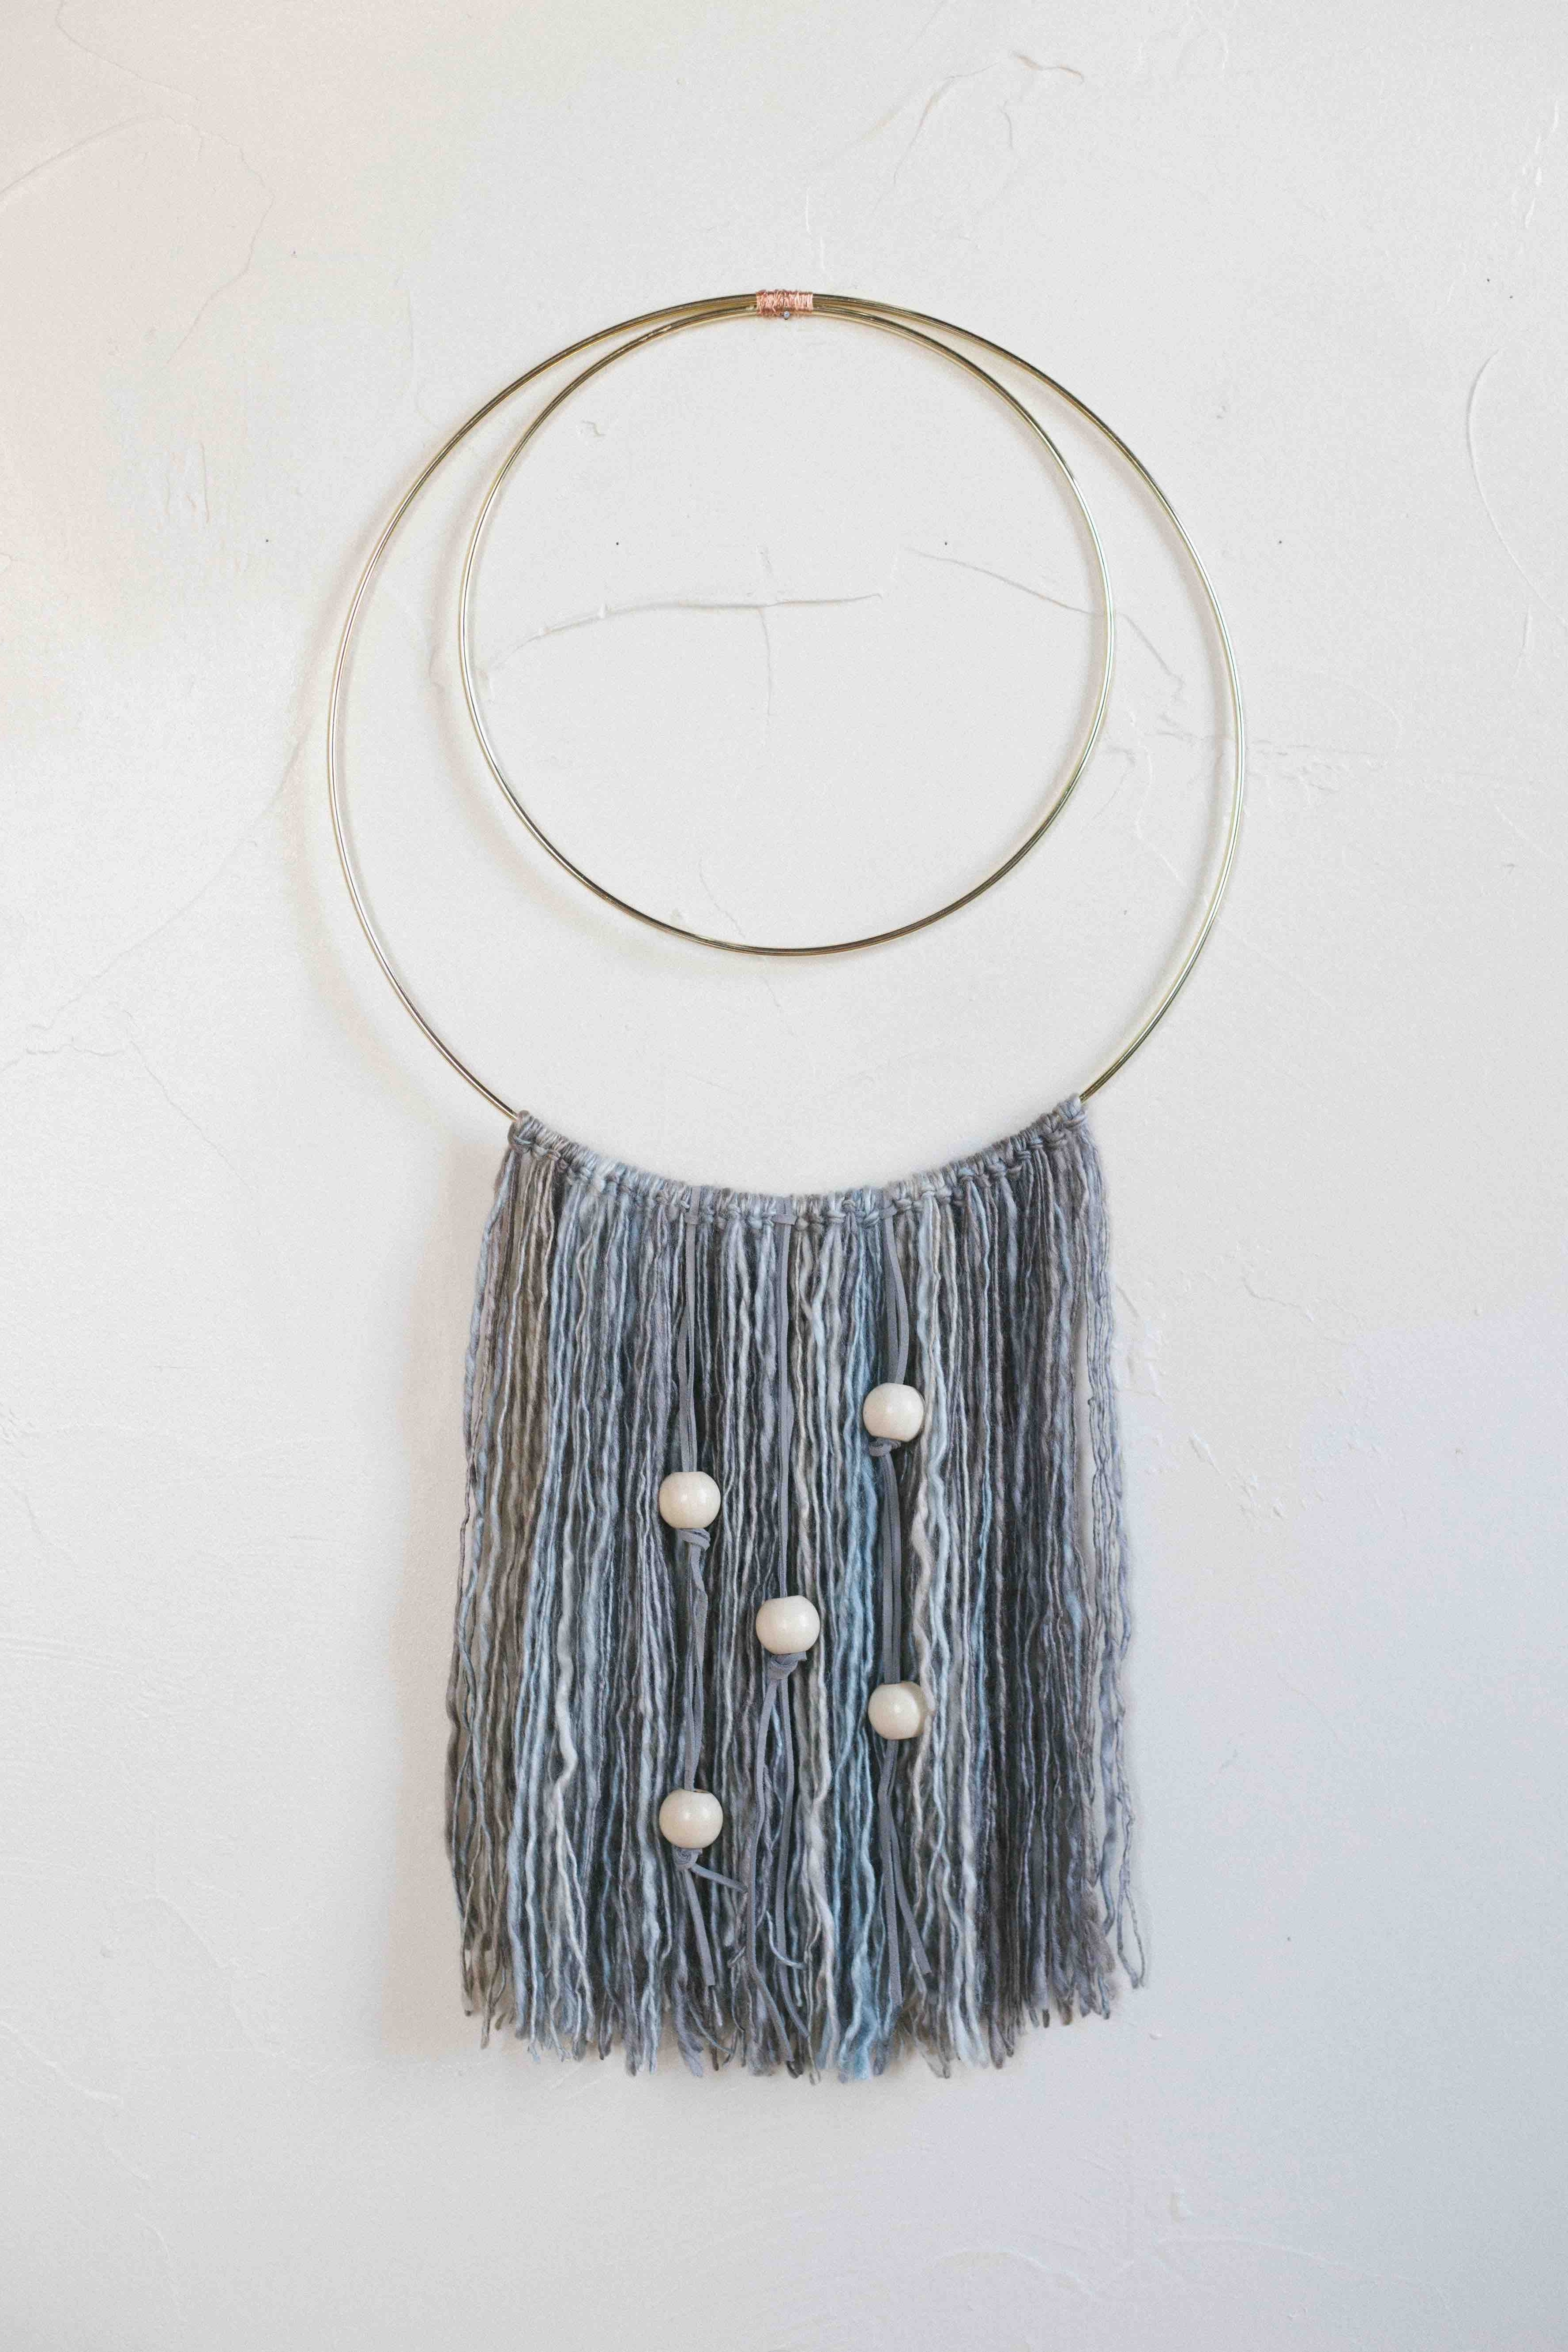 Best And Newest This Diy Anthropologie Inspired Wall Hanging Is A Must (View 14 of 15)